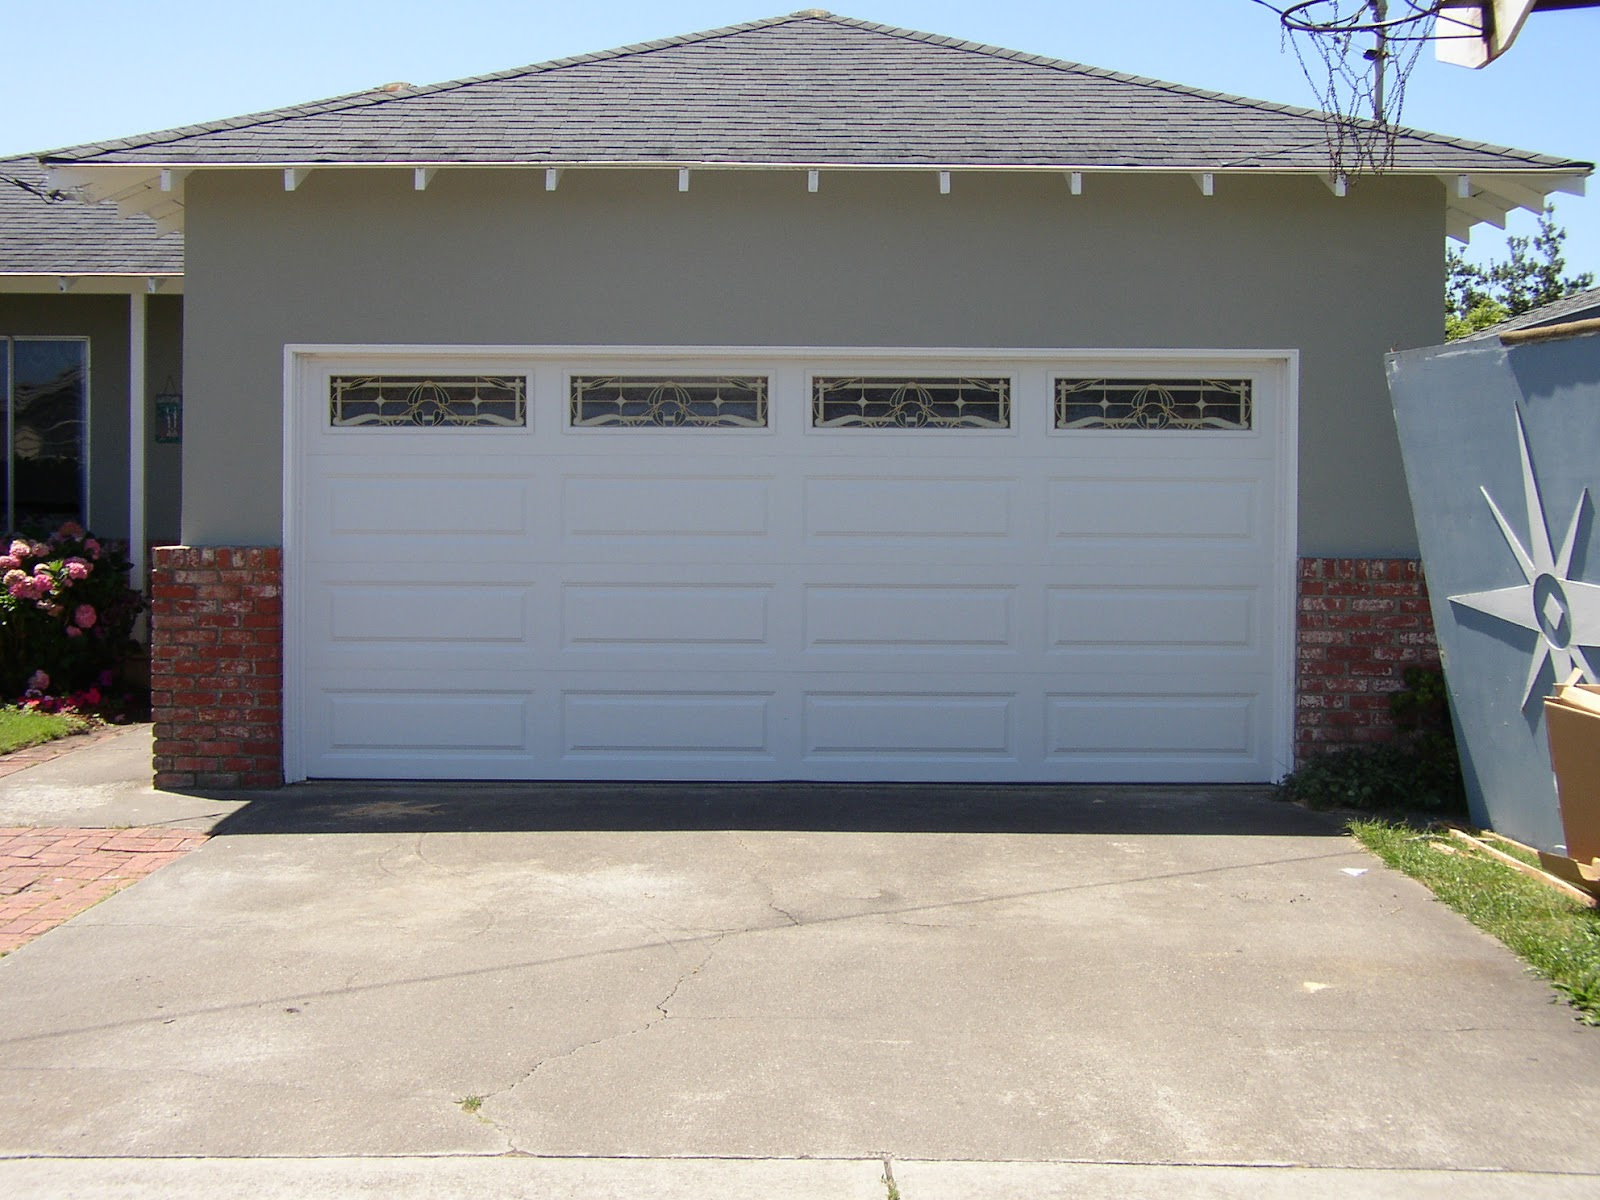 1200 #3A6991 Atlanta Garage Door picture/photo Overhead Doors Atlanta 36591600